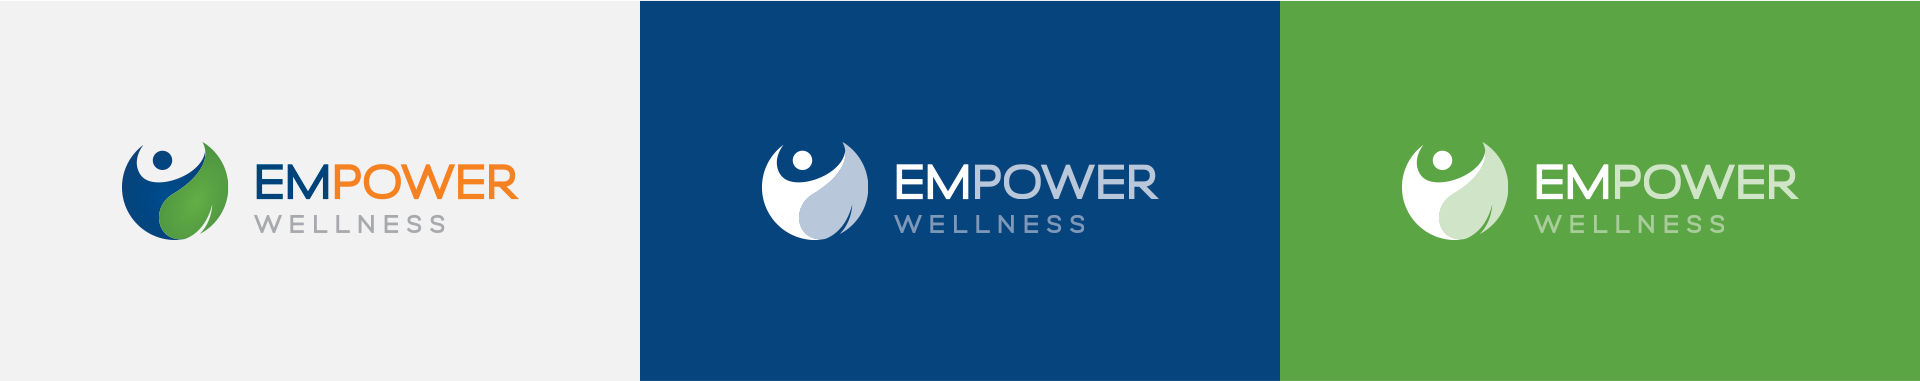 Horizontal orientation of Empower Wellness Logo on different color backgrounds